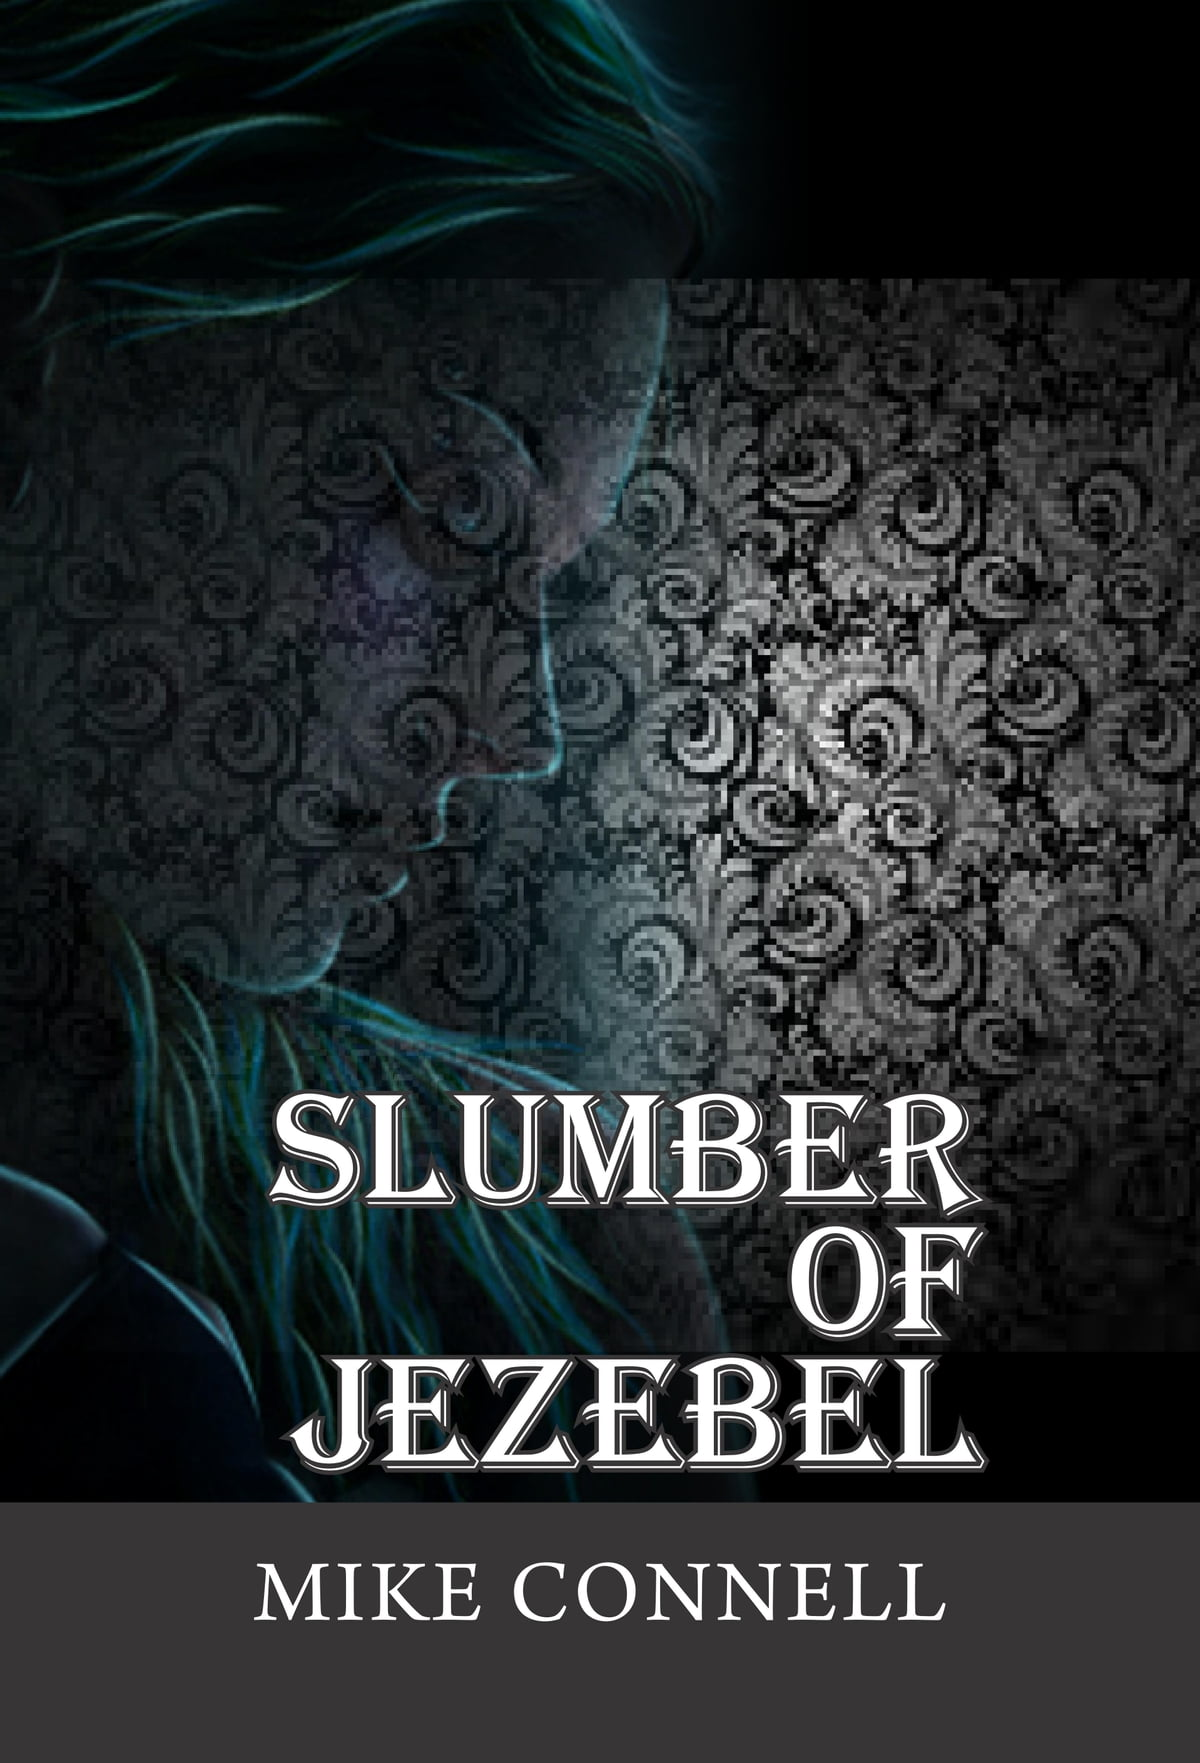 Slumber of Jezebel (3 sermons) eBook by Mike Connell